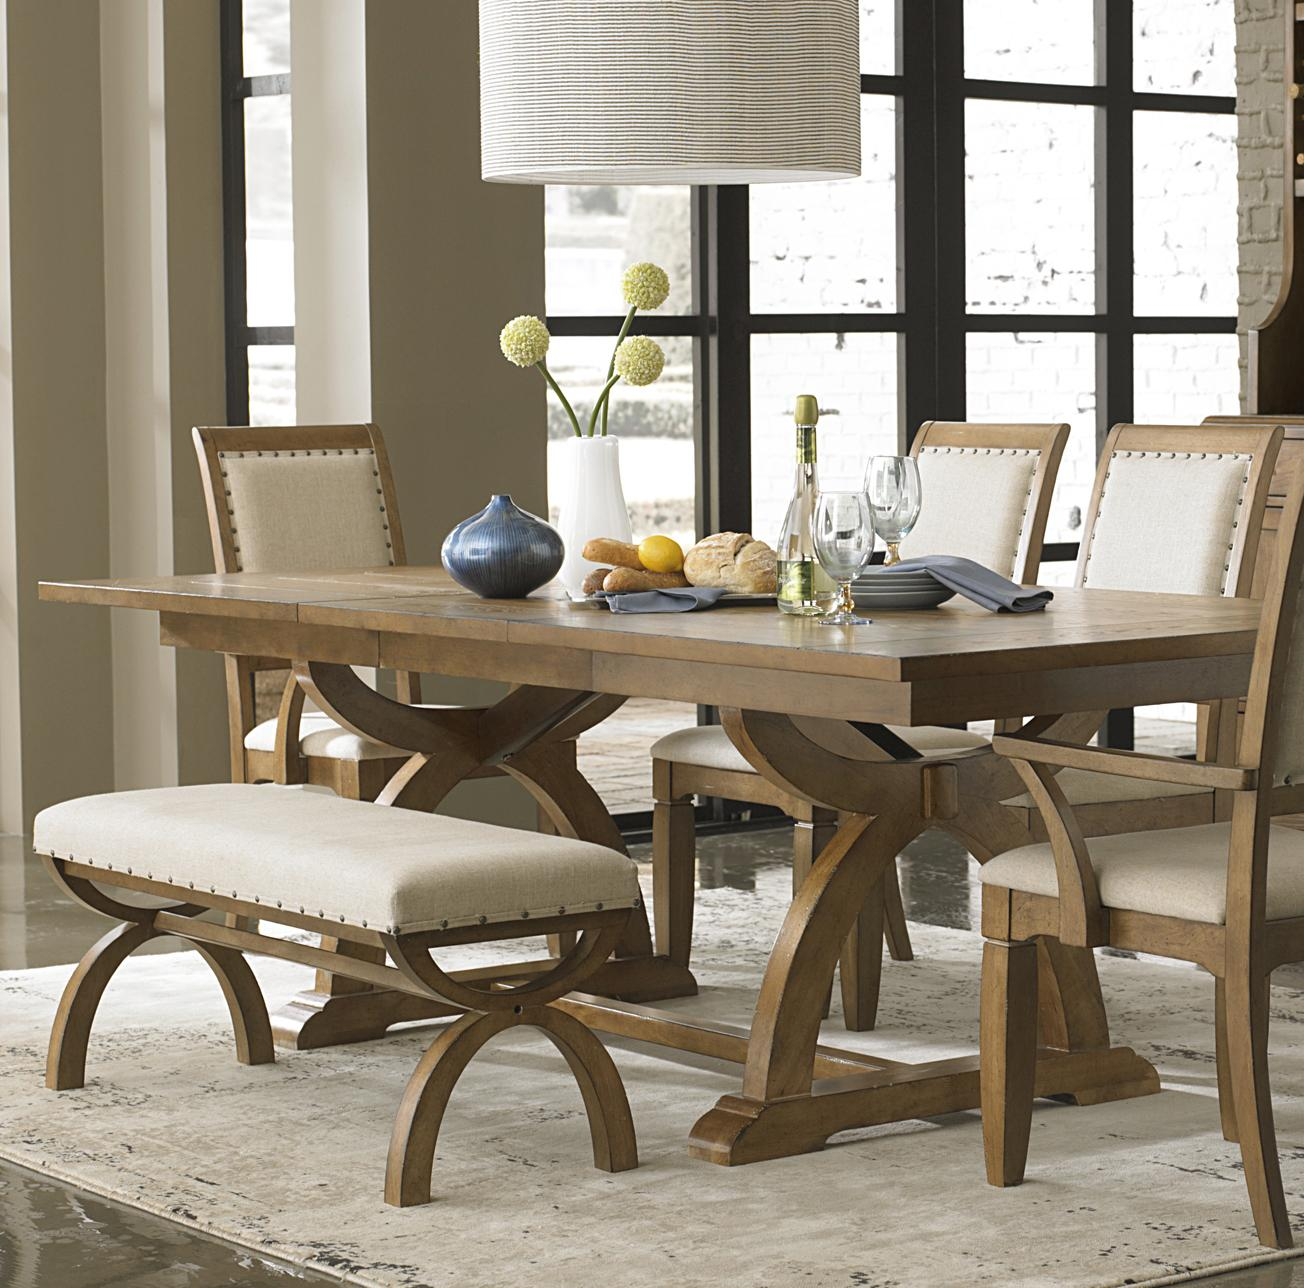 Trestle Dining Table With One 24 Inch Table Leaf